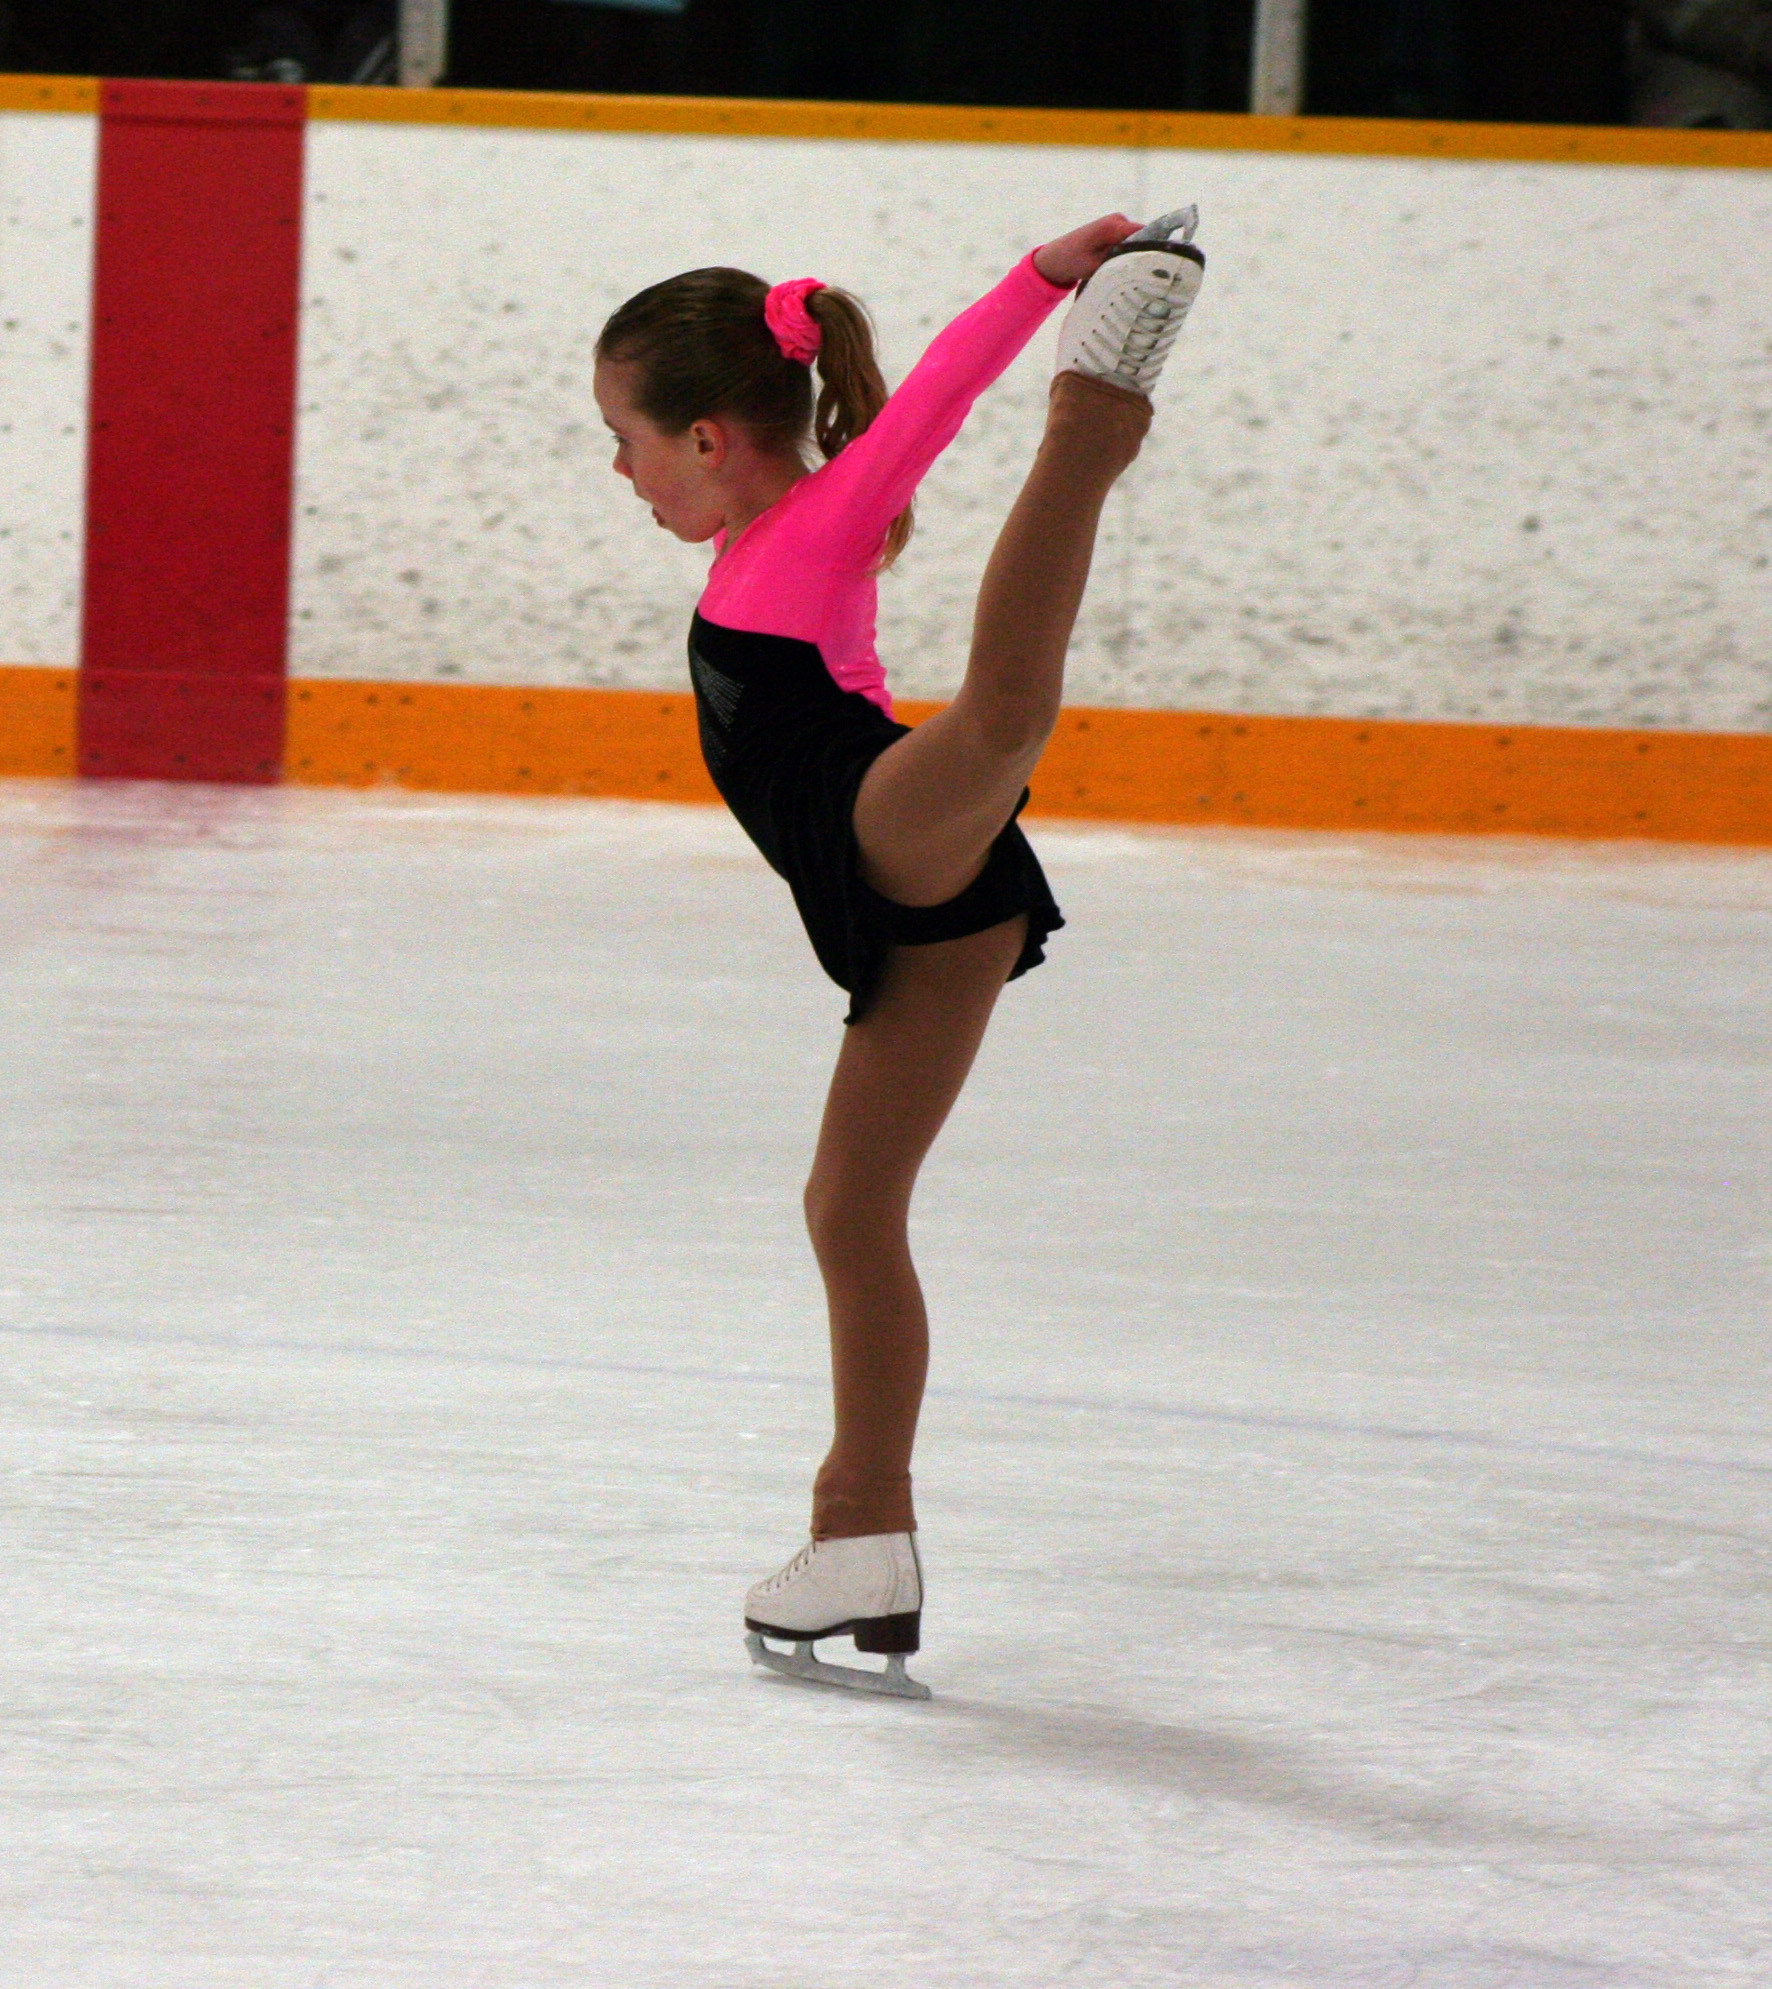 U S Figure Skating Basic Skills Program Basic Skills 18